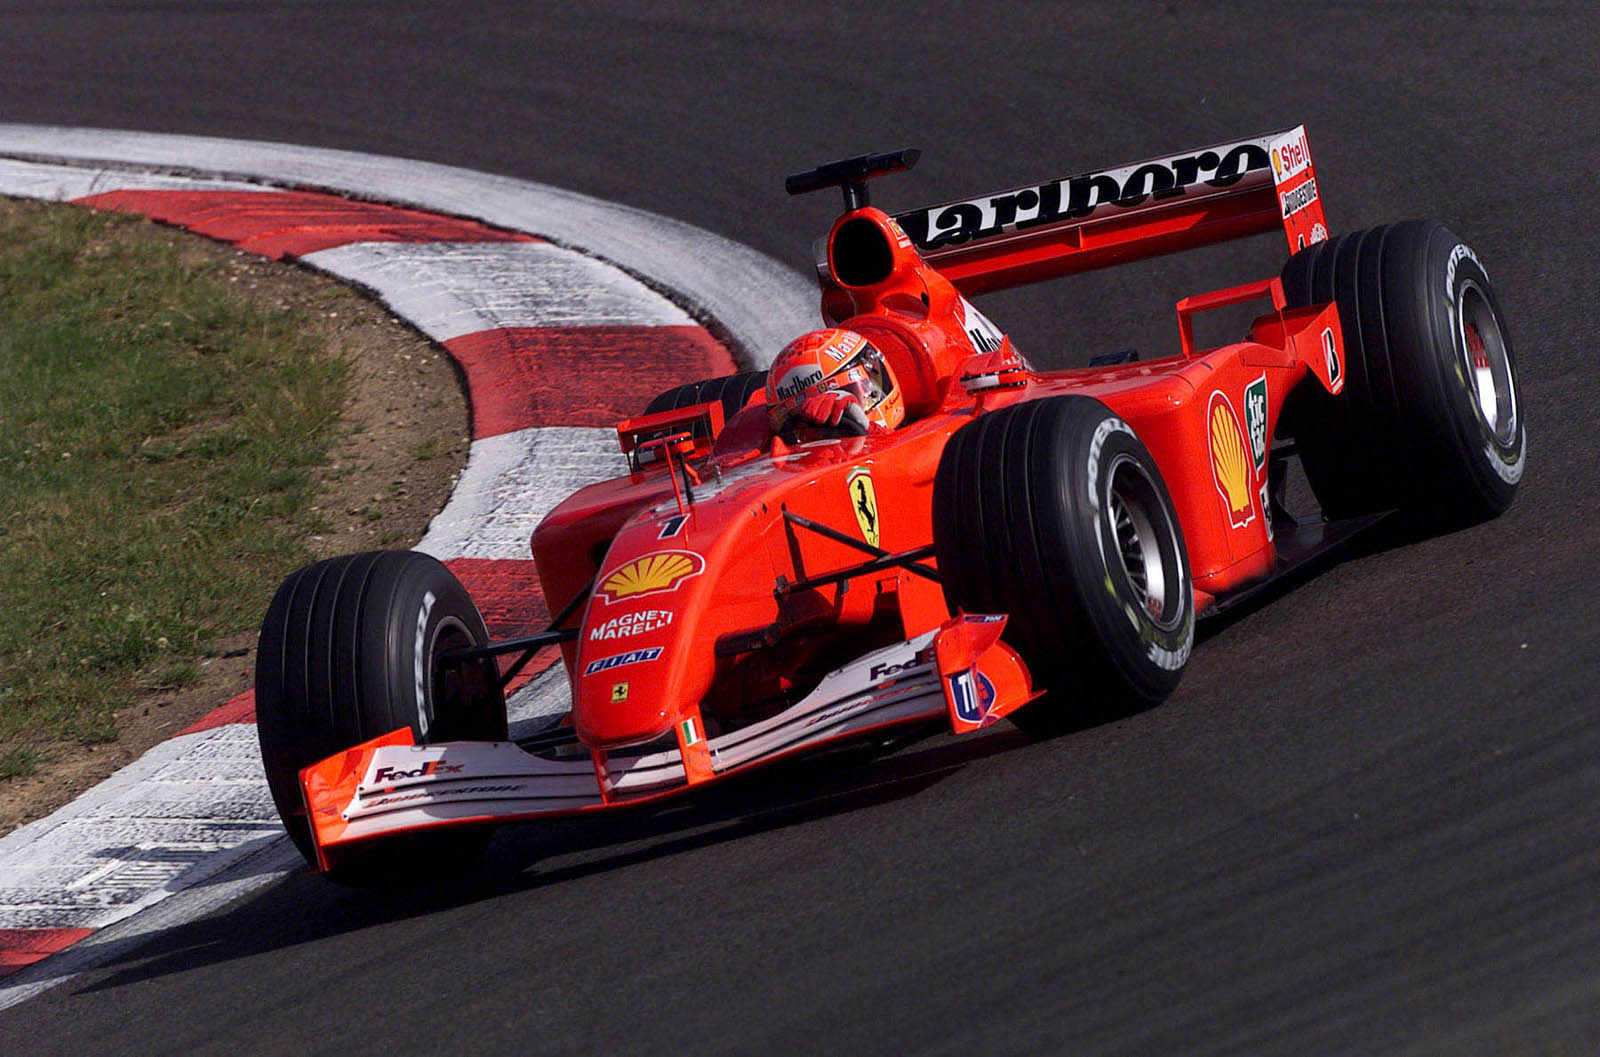 The Most Expensive Car In The World >> Ex-Schumacher Ferrari F1 Car Sells For R105 Million At Auction